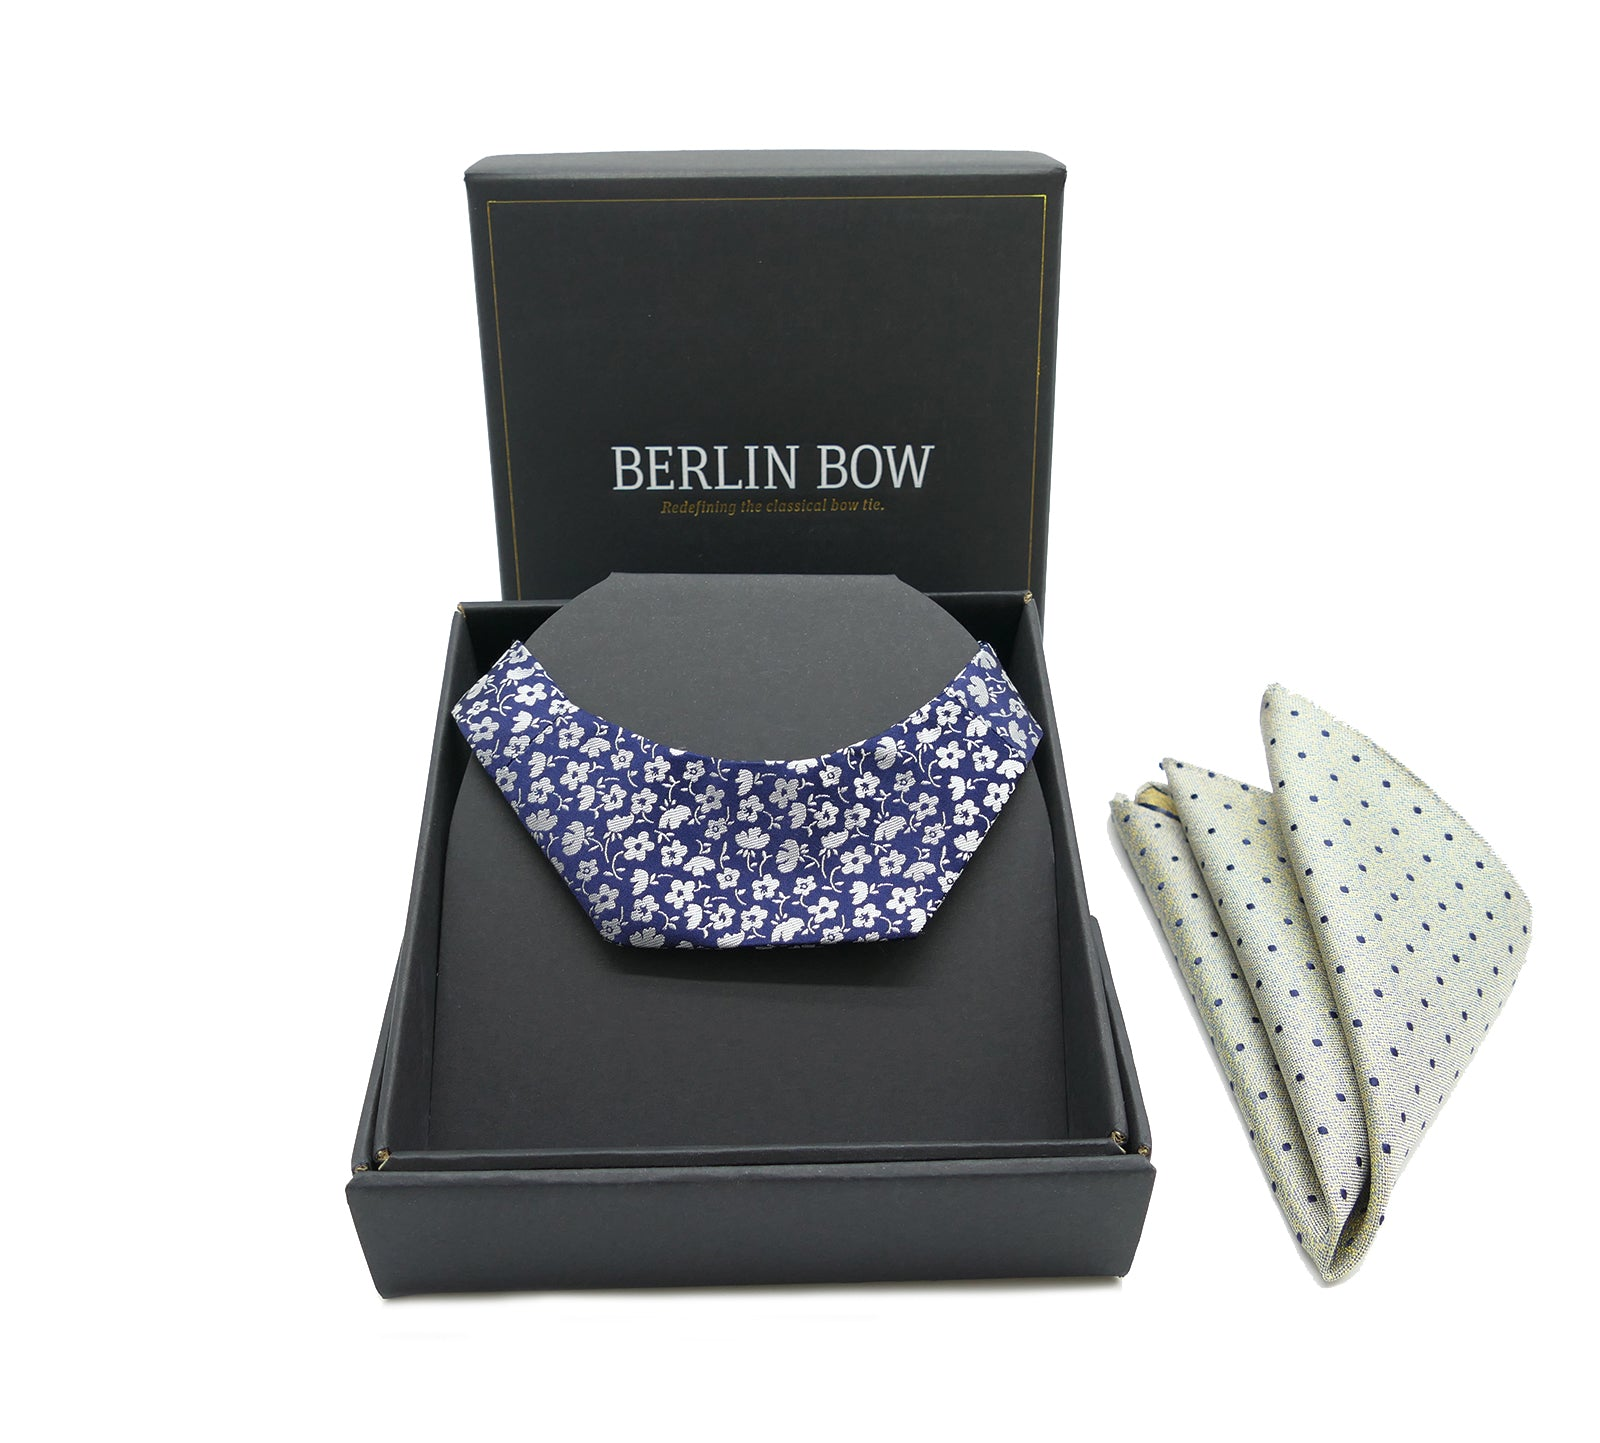 BERLIN BOW No. II design: pirlo flower